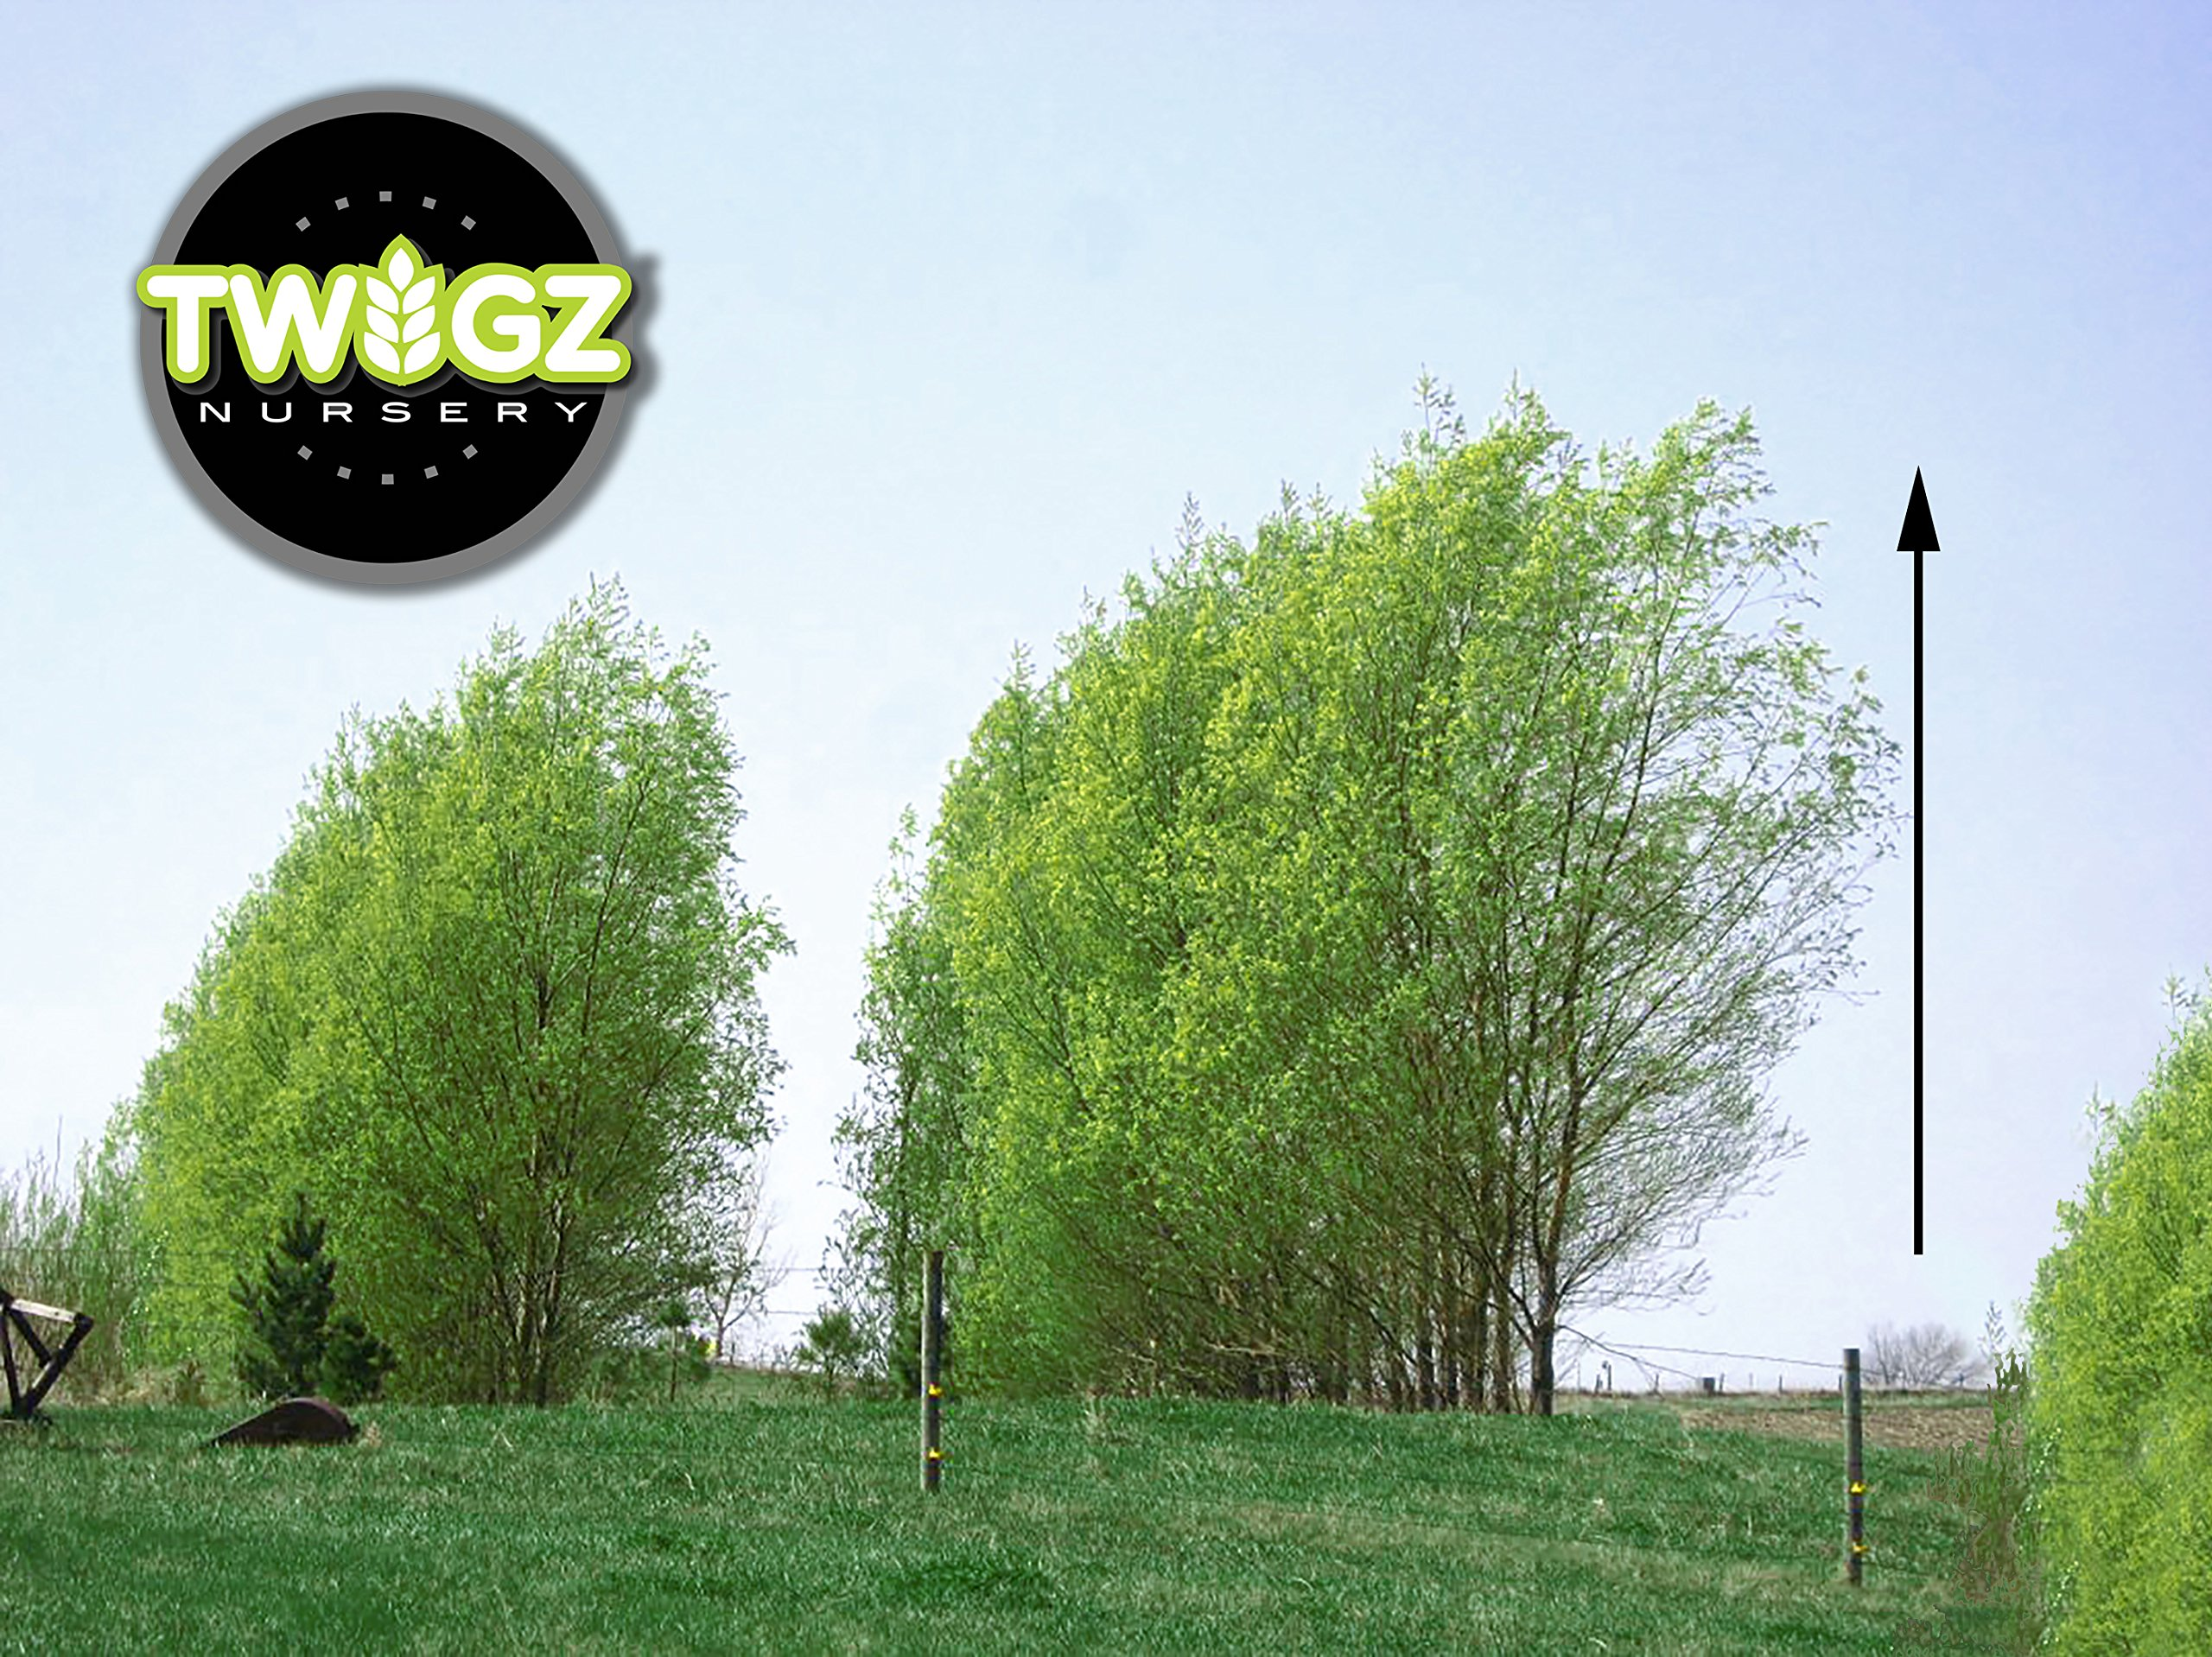 18 Hybrid Willow Trees - Ready to Plant - Privacy and Shade - Indoor/Outdoor Live Plants by Twigz Nursery